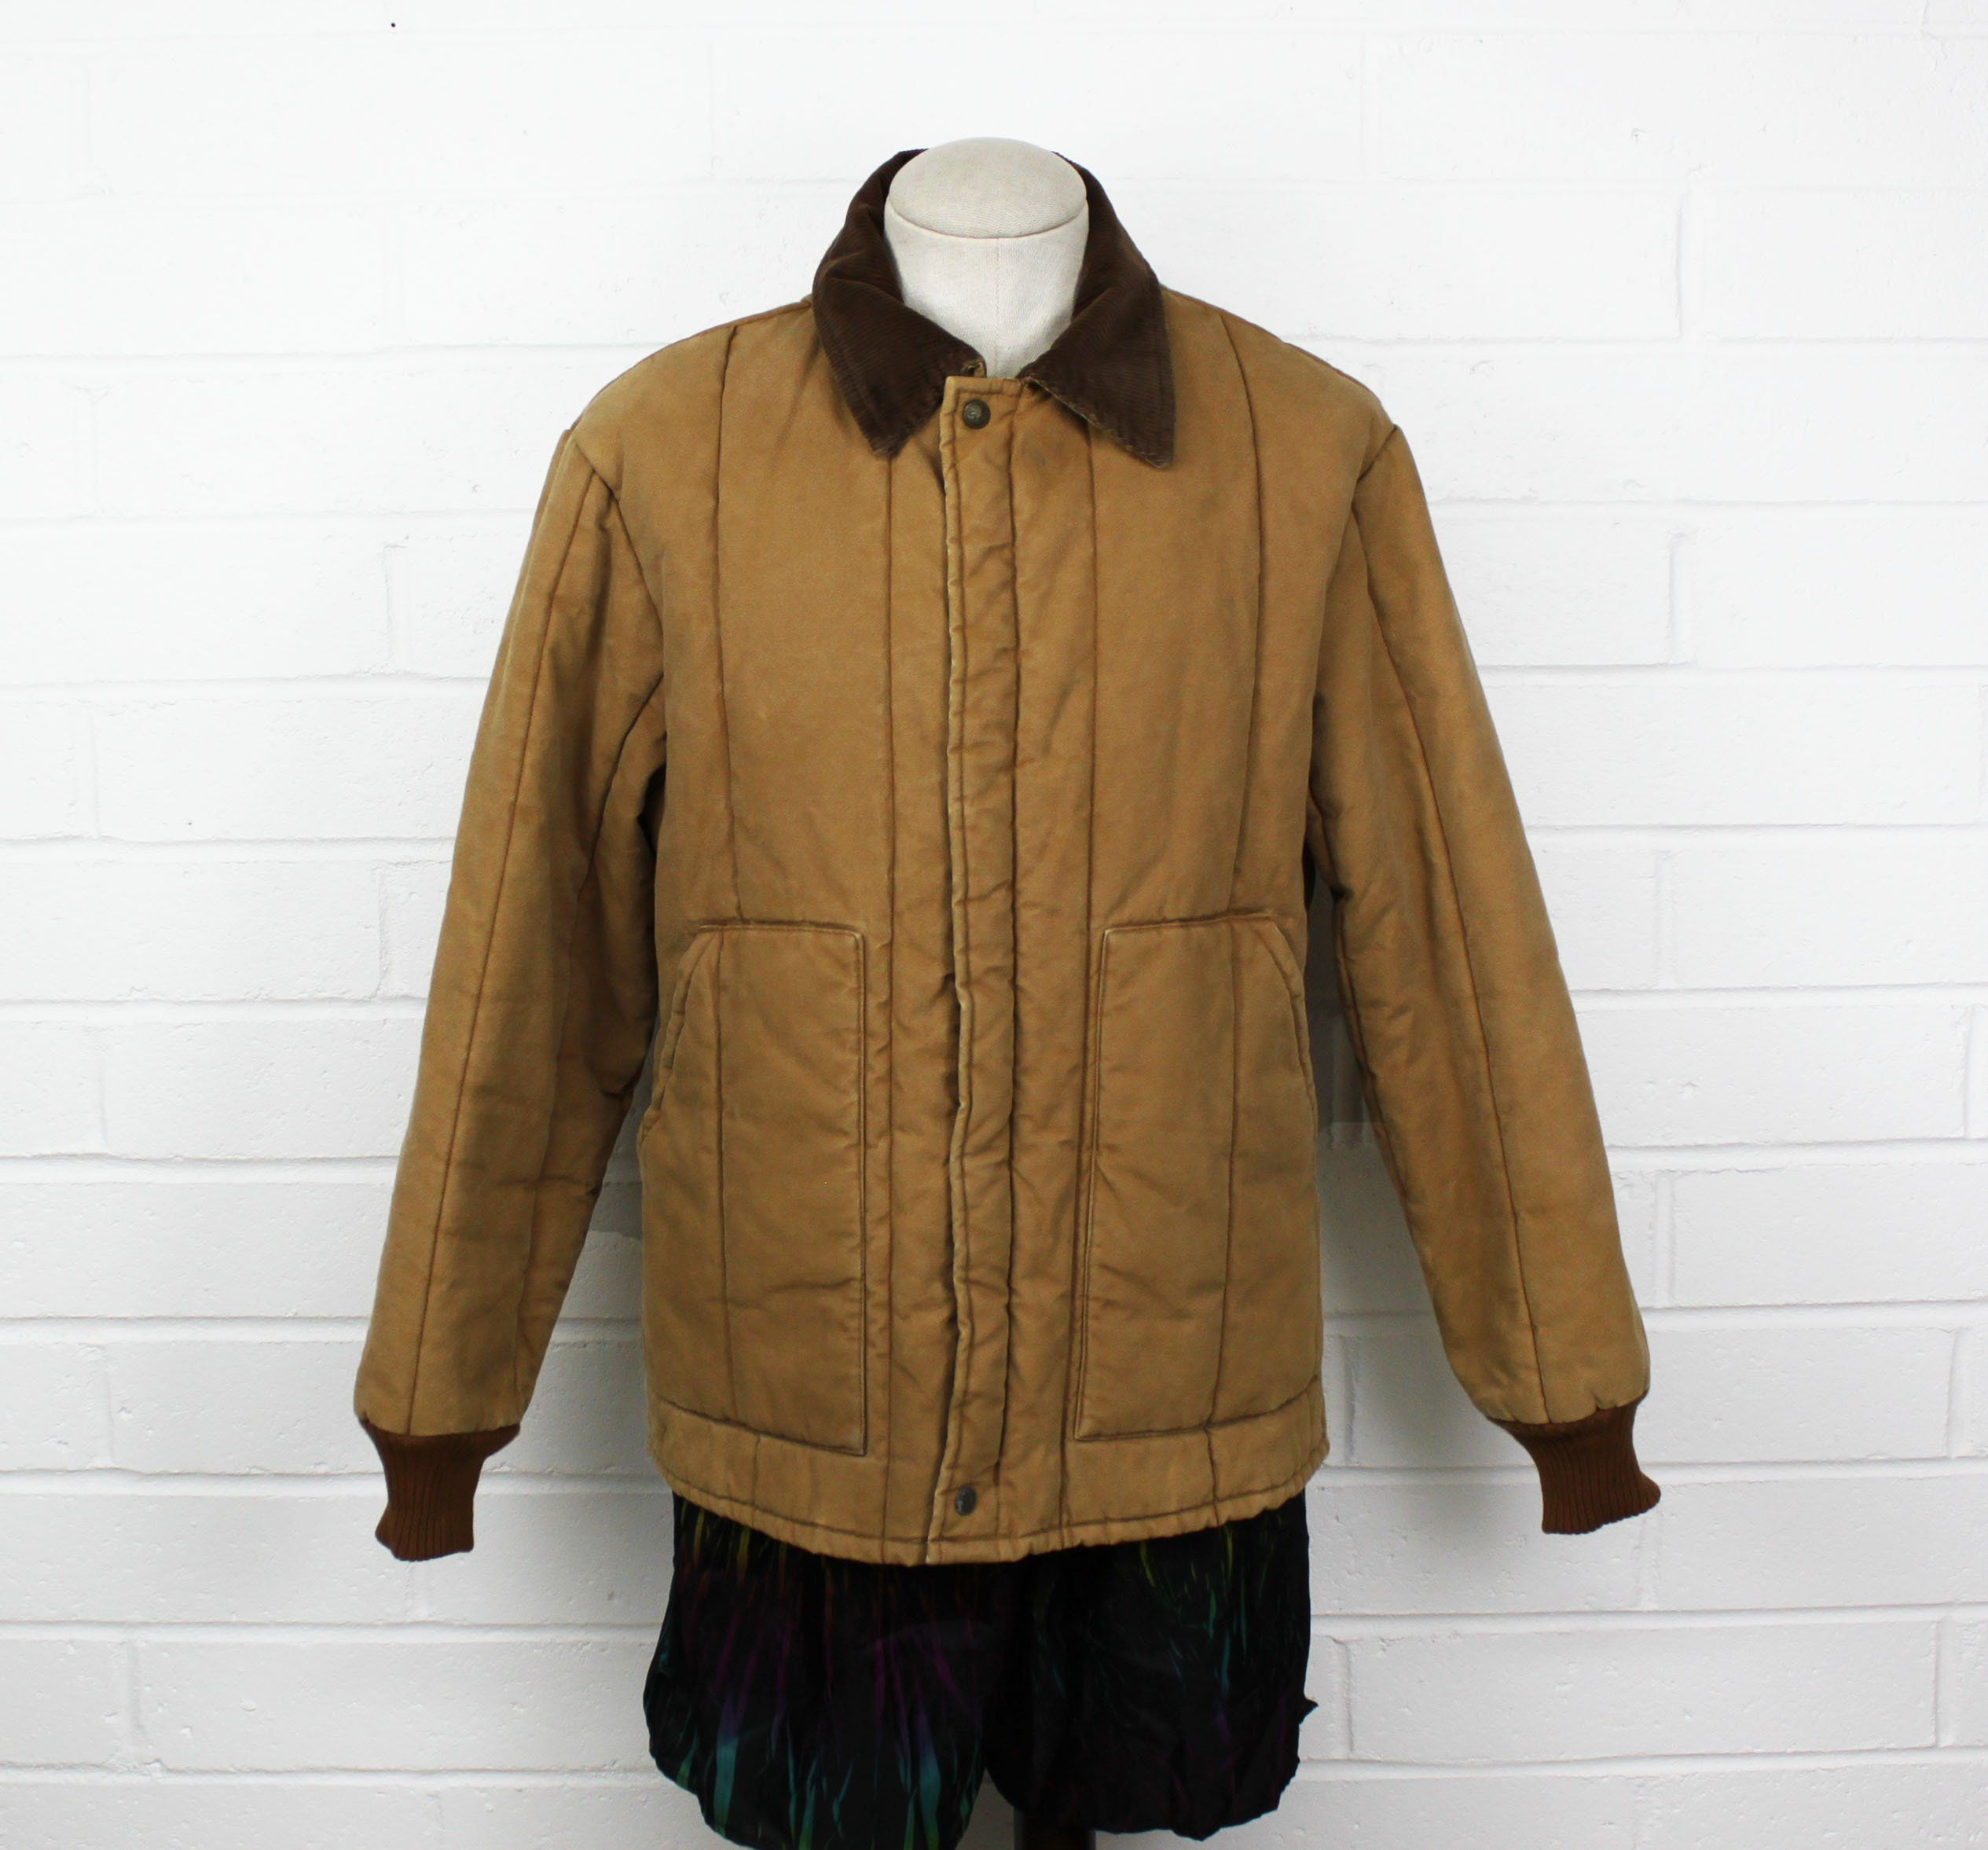 Vintage 80s Utility Brown Walls Insulated Jacket Khaki Zip Up